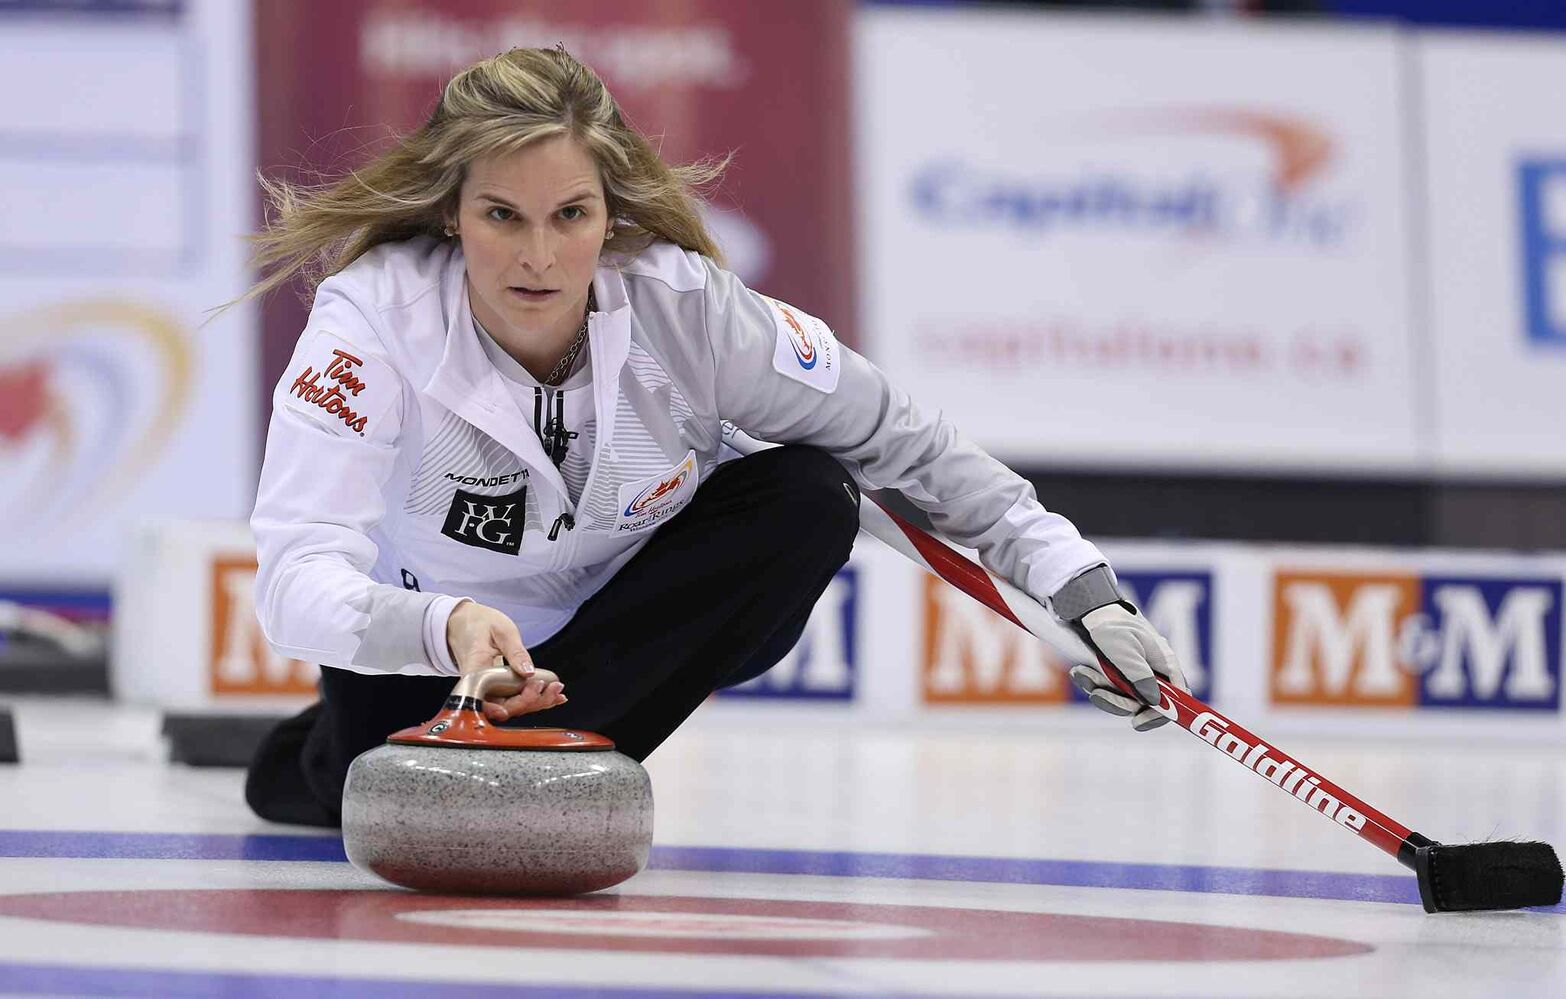 Skip Jennifer Jones delivers a stone. (Jason Halstead / Winnipeg Free Press)